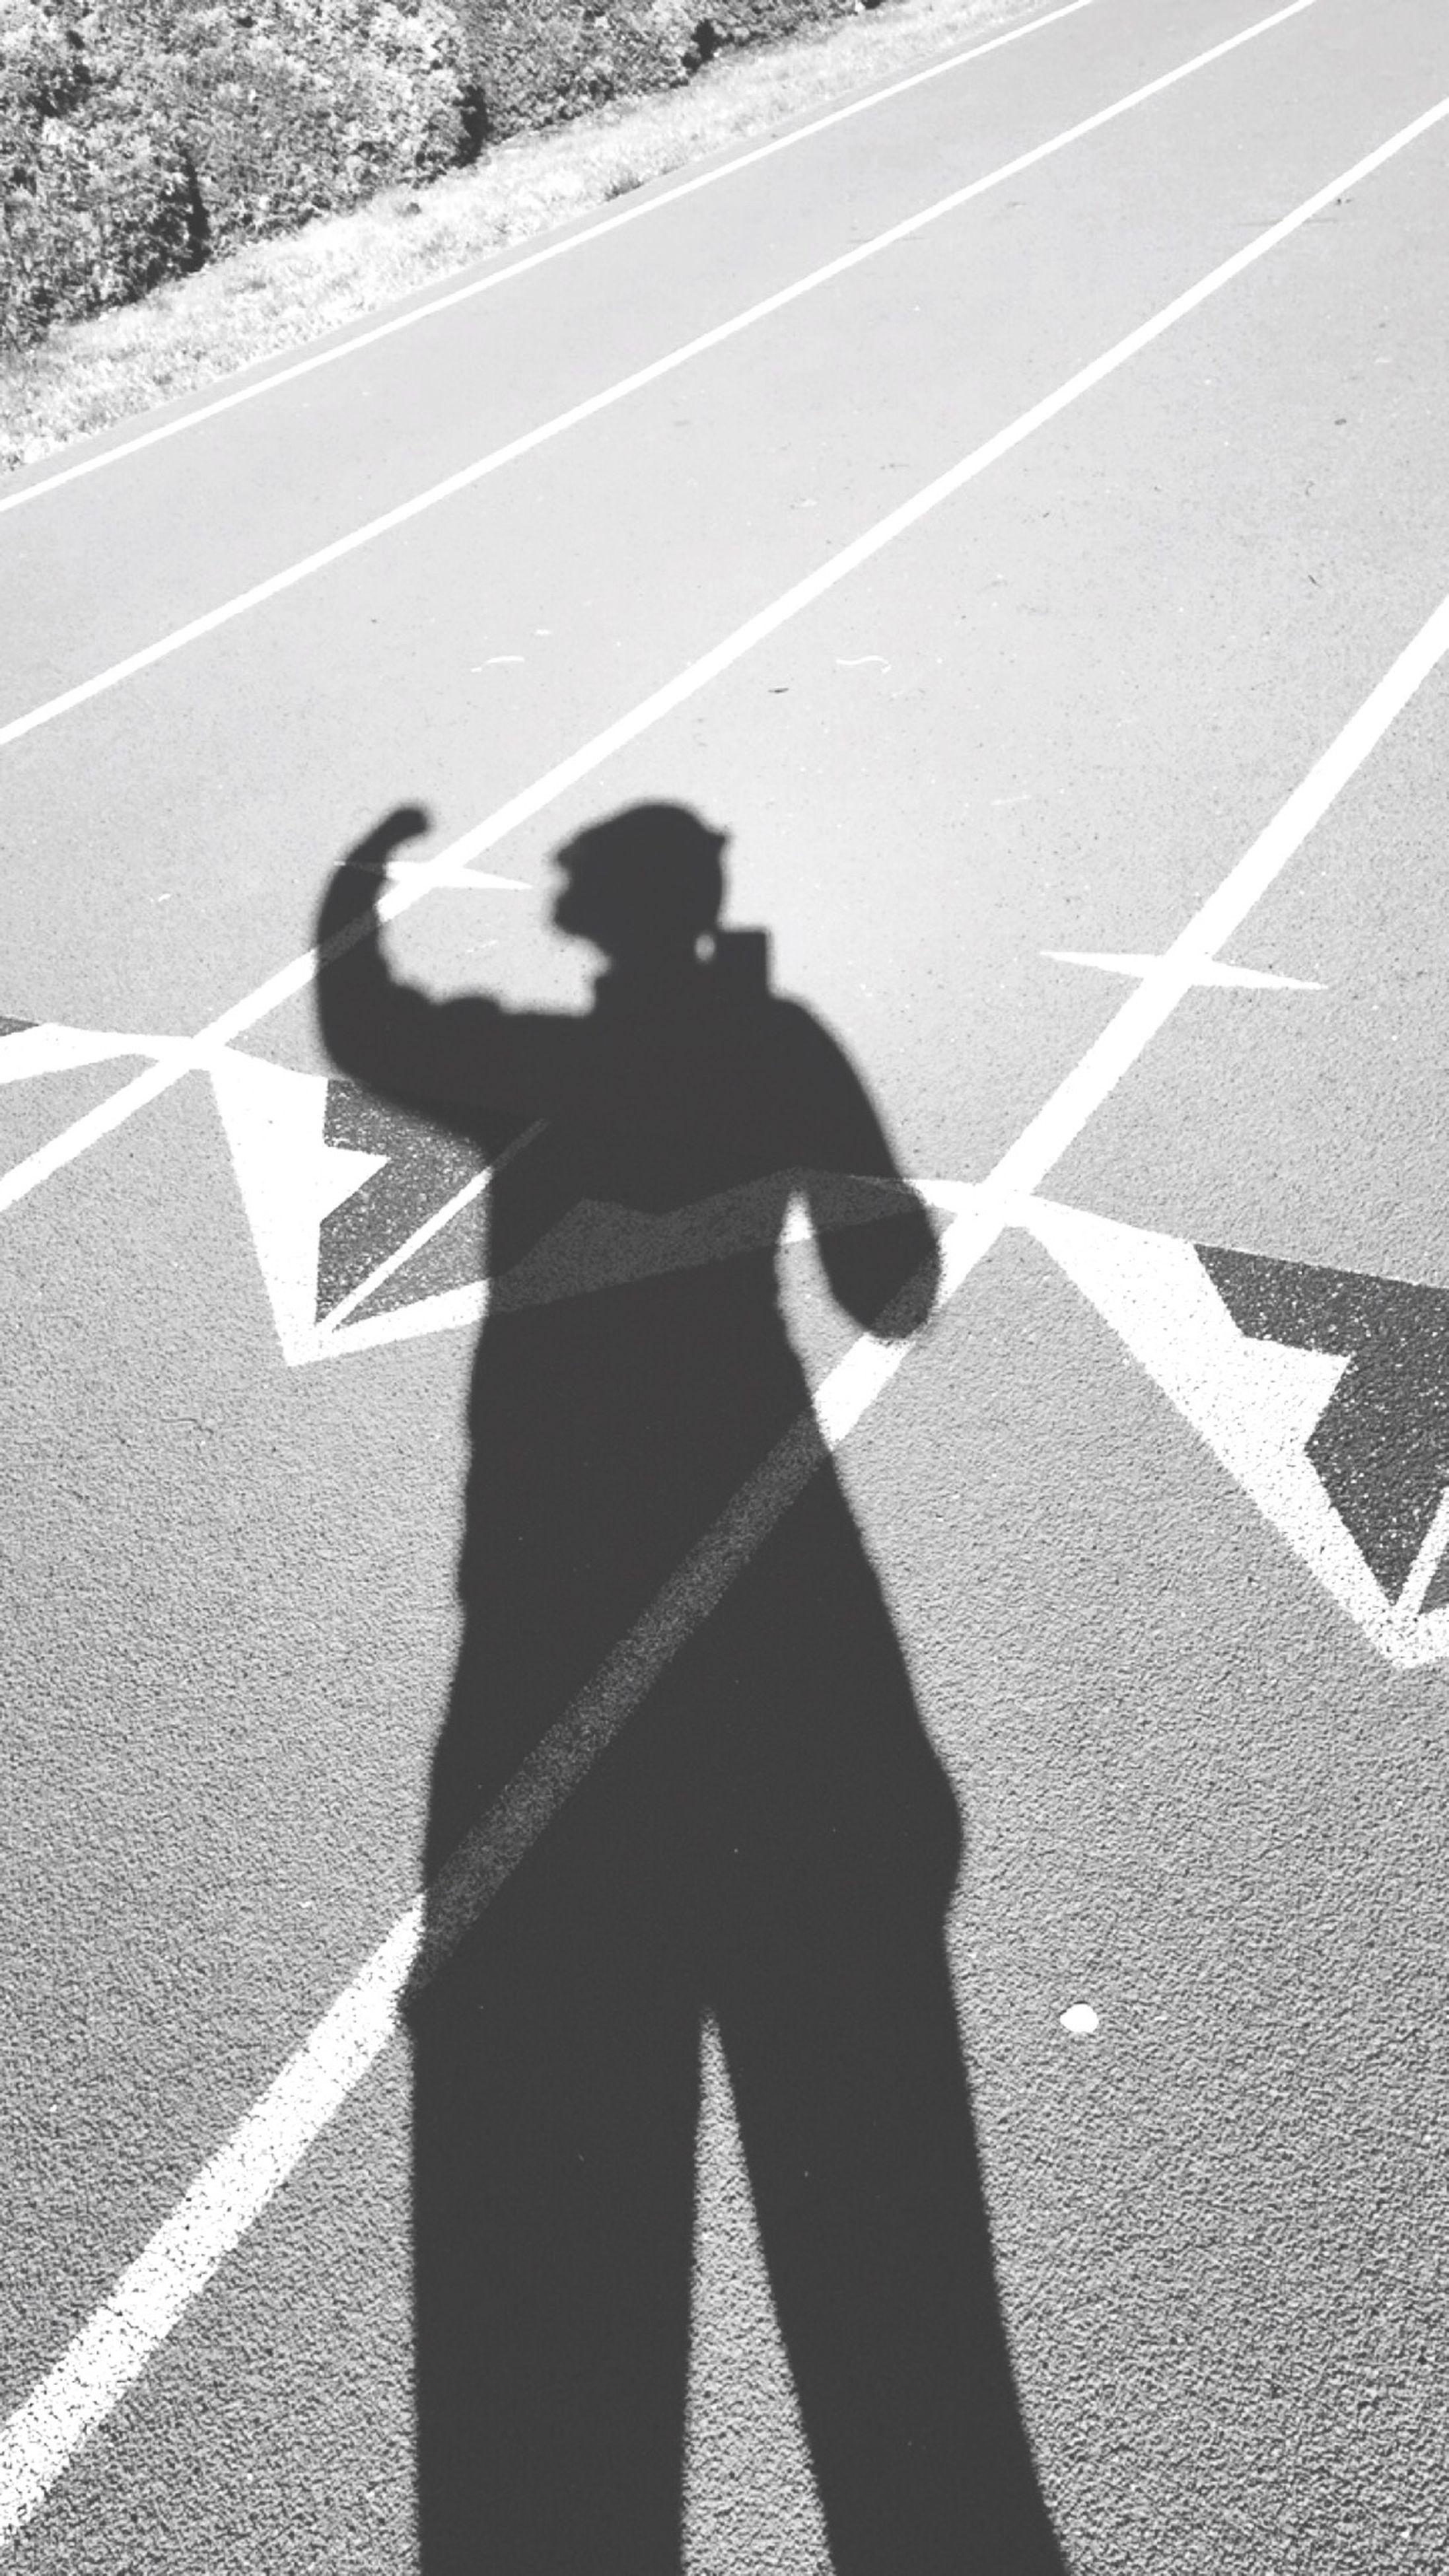 road marking, shadow, transportation, road, street, high angle view, asphalt, sunlight, focus on shadow, guidance, zebra crossing, day, unrecognizable person, arrow symbol, outdoors, human representation, the way forward, lifestyles